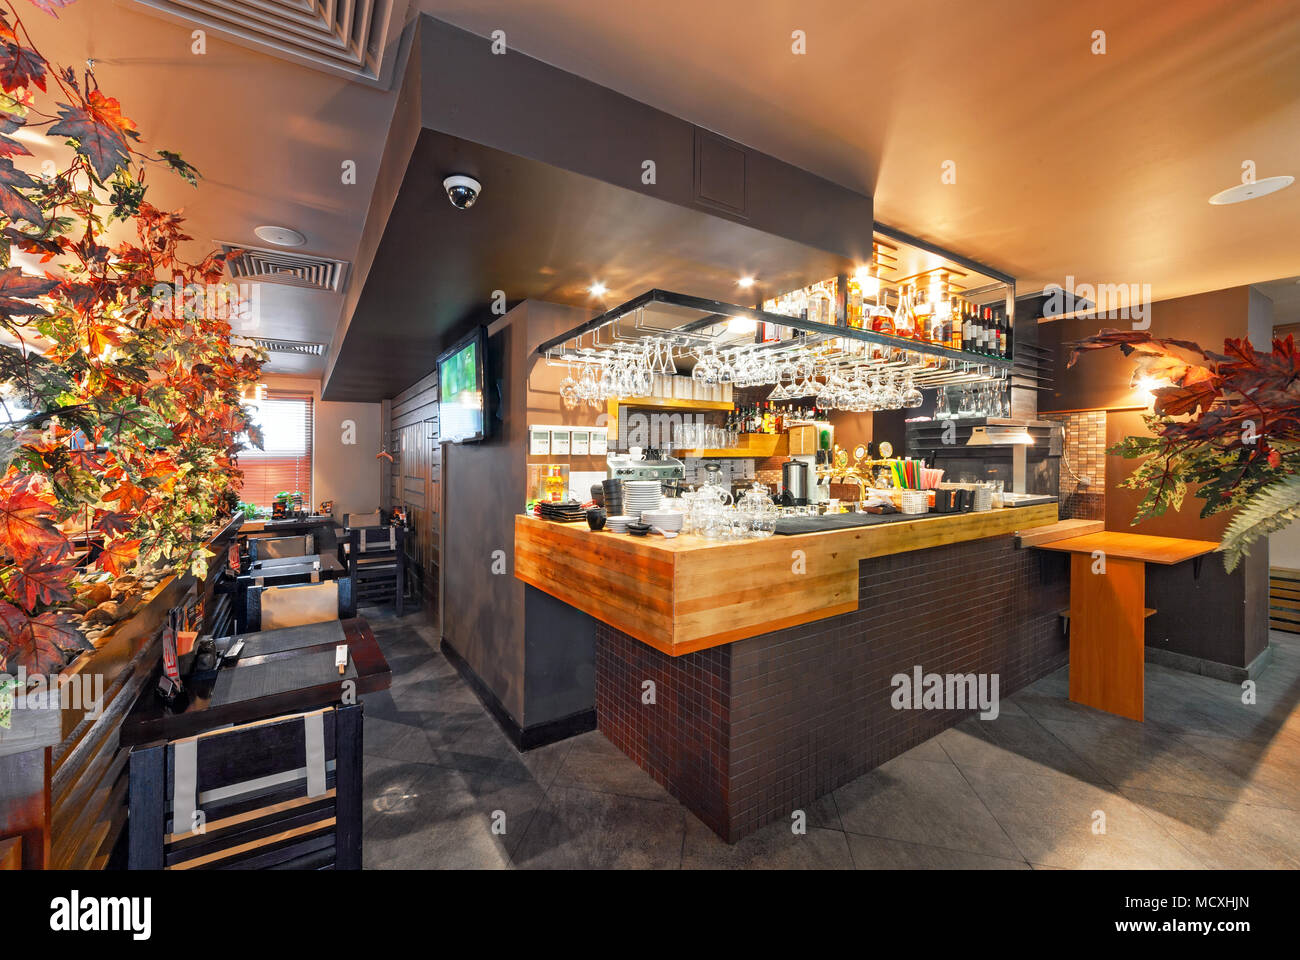 Moscow September 2014 Interior Of The Modern Japanese Restaurant Yakitoriya Decorated In The Autumn Theme Bar Counter Stock Photo Alamy